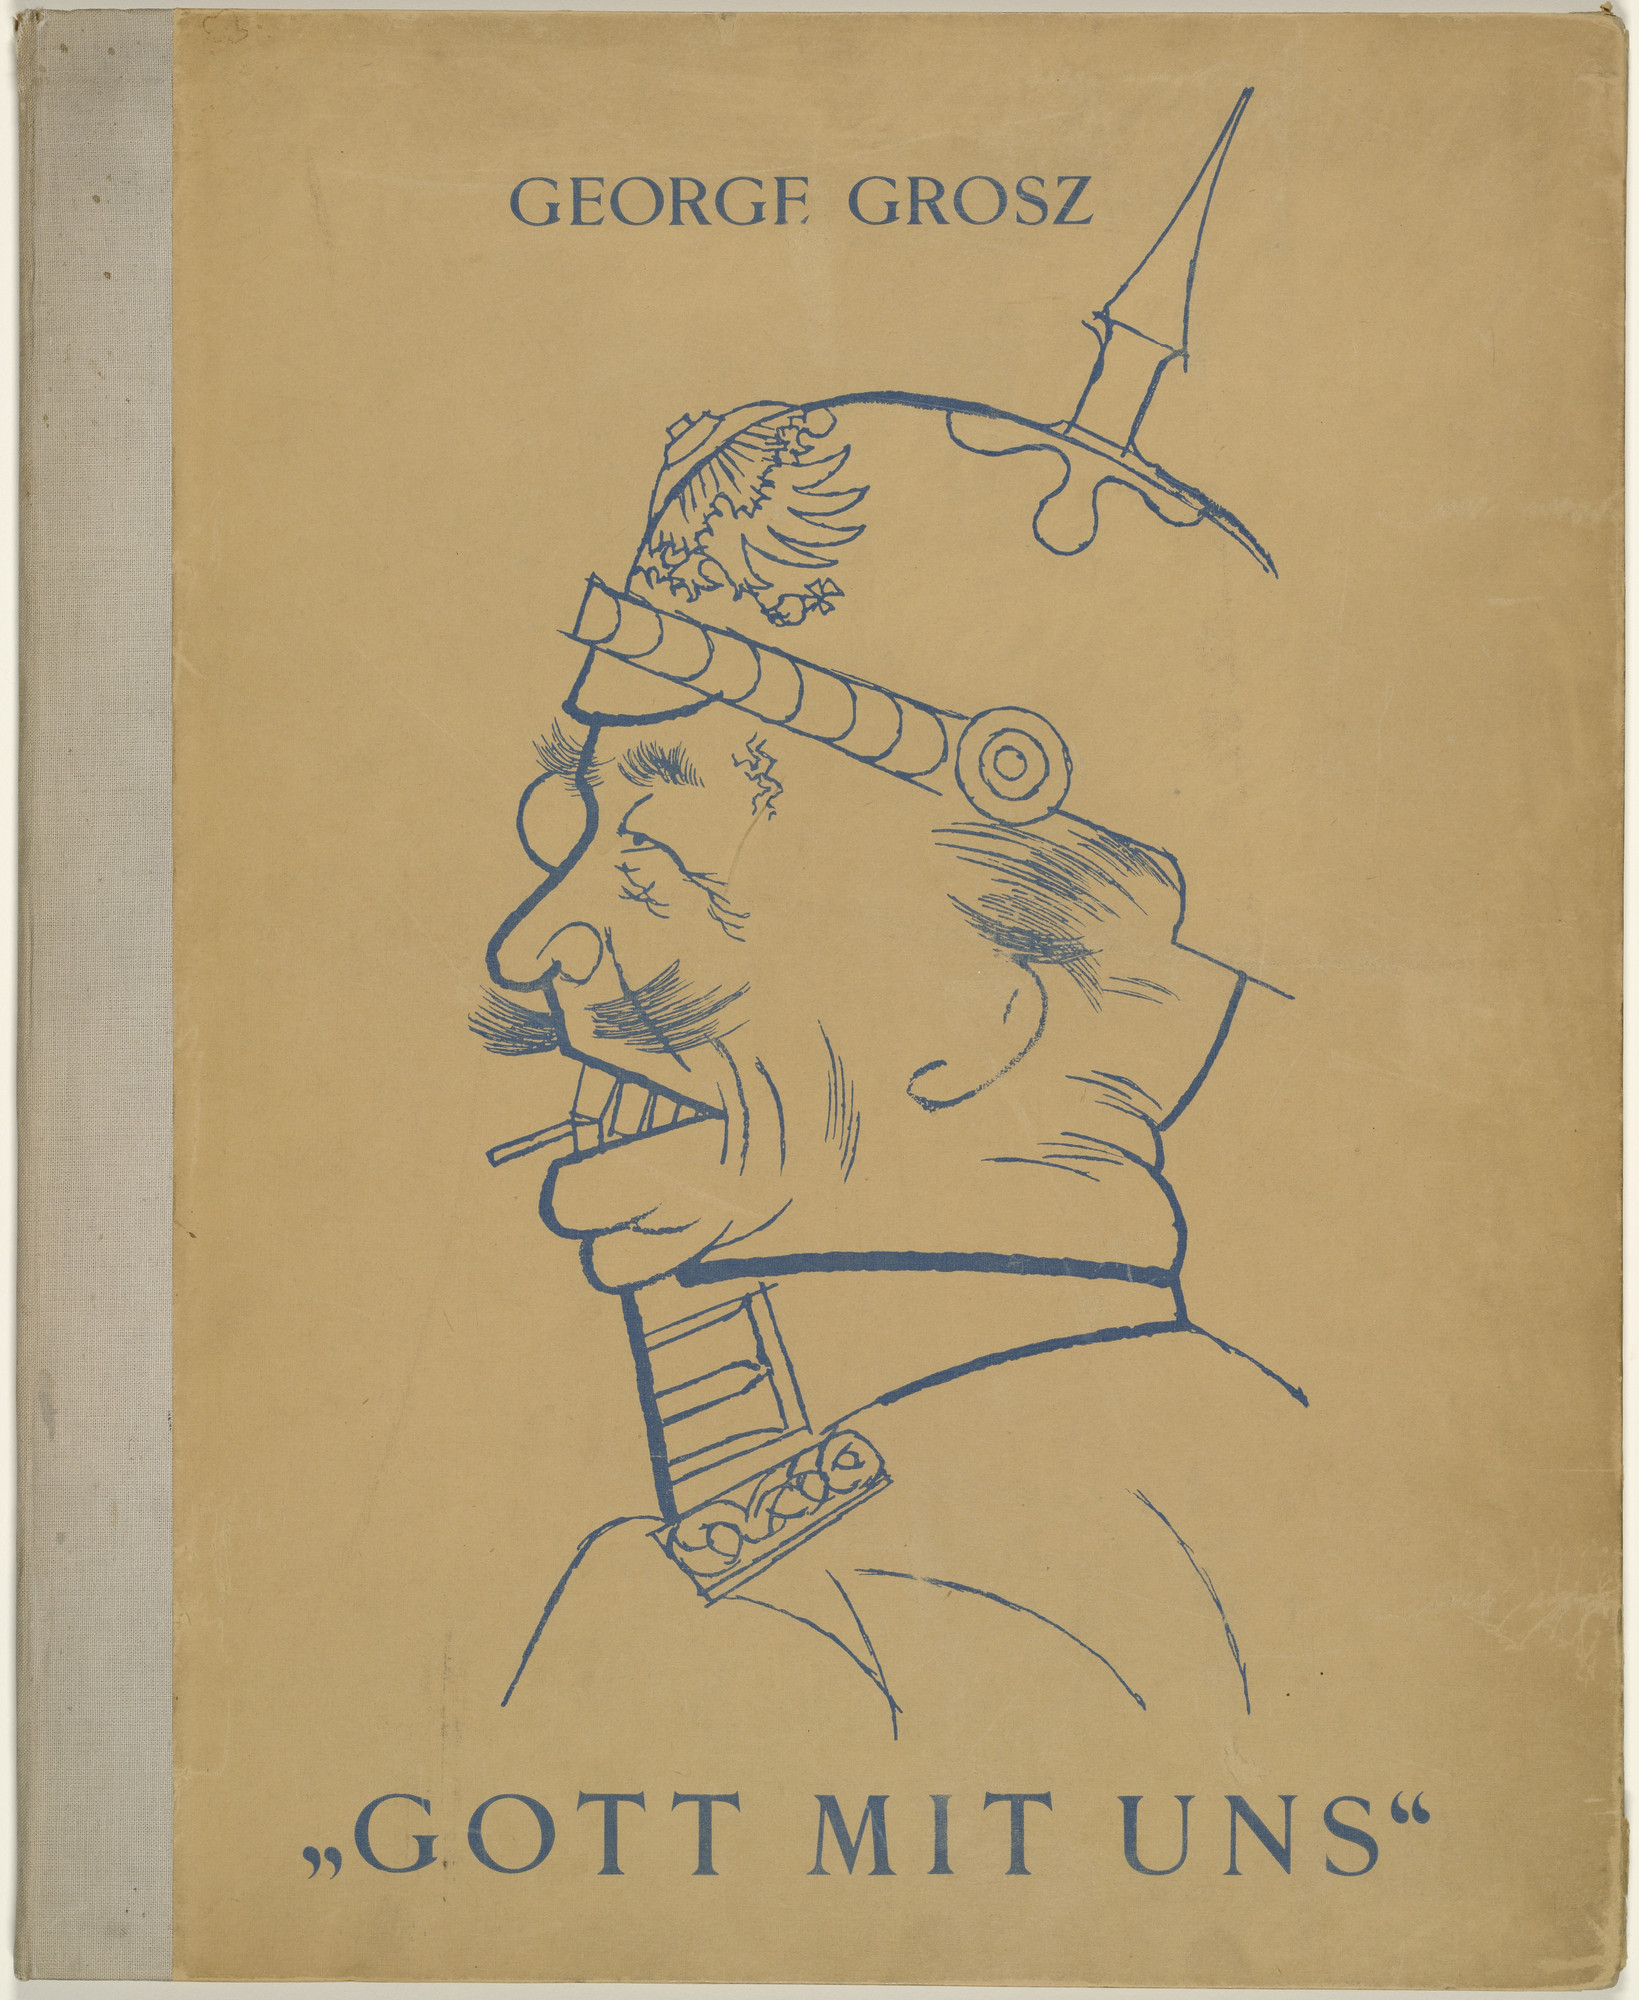 George Grosz Cover From The Portfolio God With Us Gott Mit Uns 1919 Published 1920 Moma